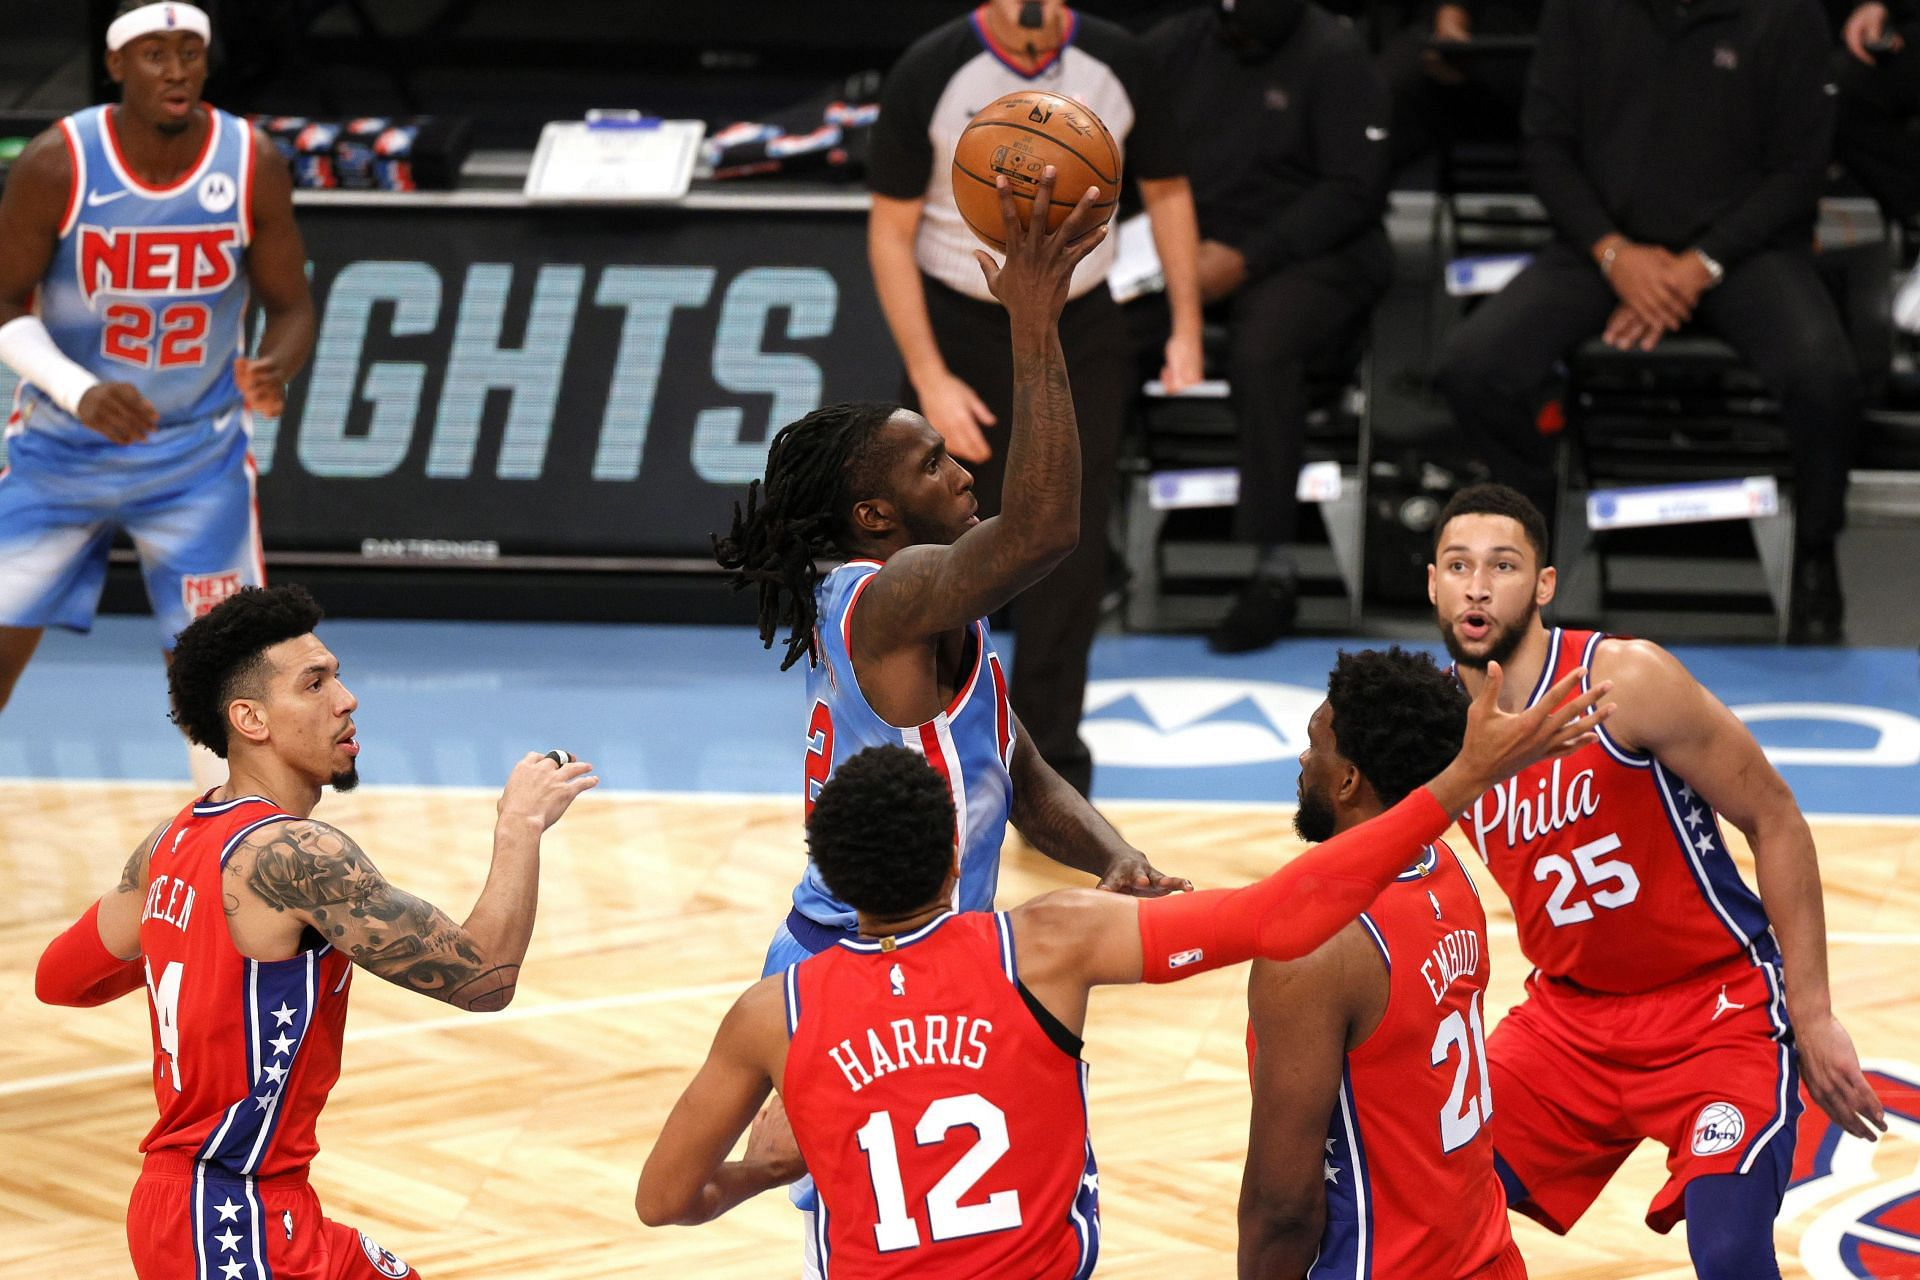 The Philadelphia 76ers' defense gang up on a drive in a game against the Brooklyn Nets last season.